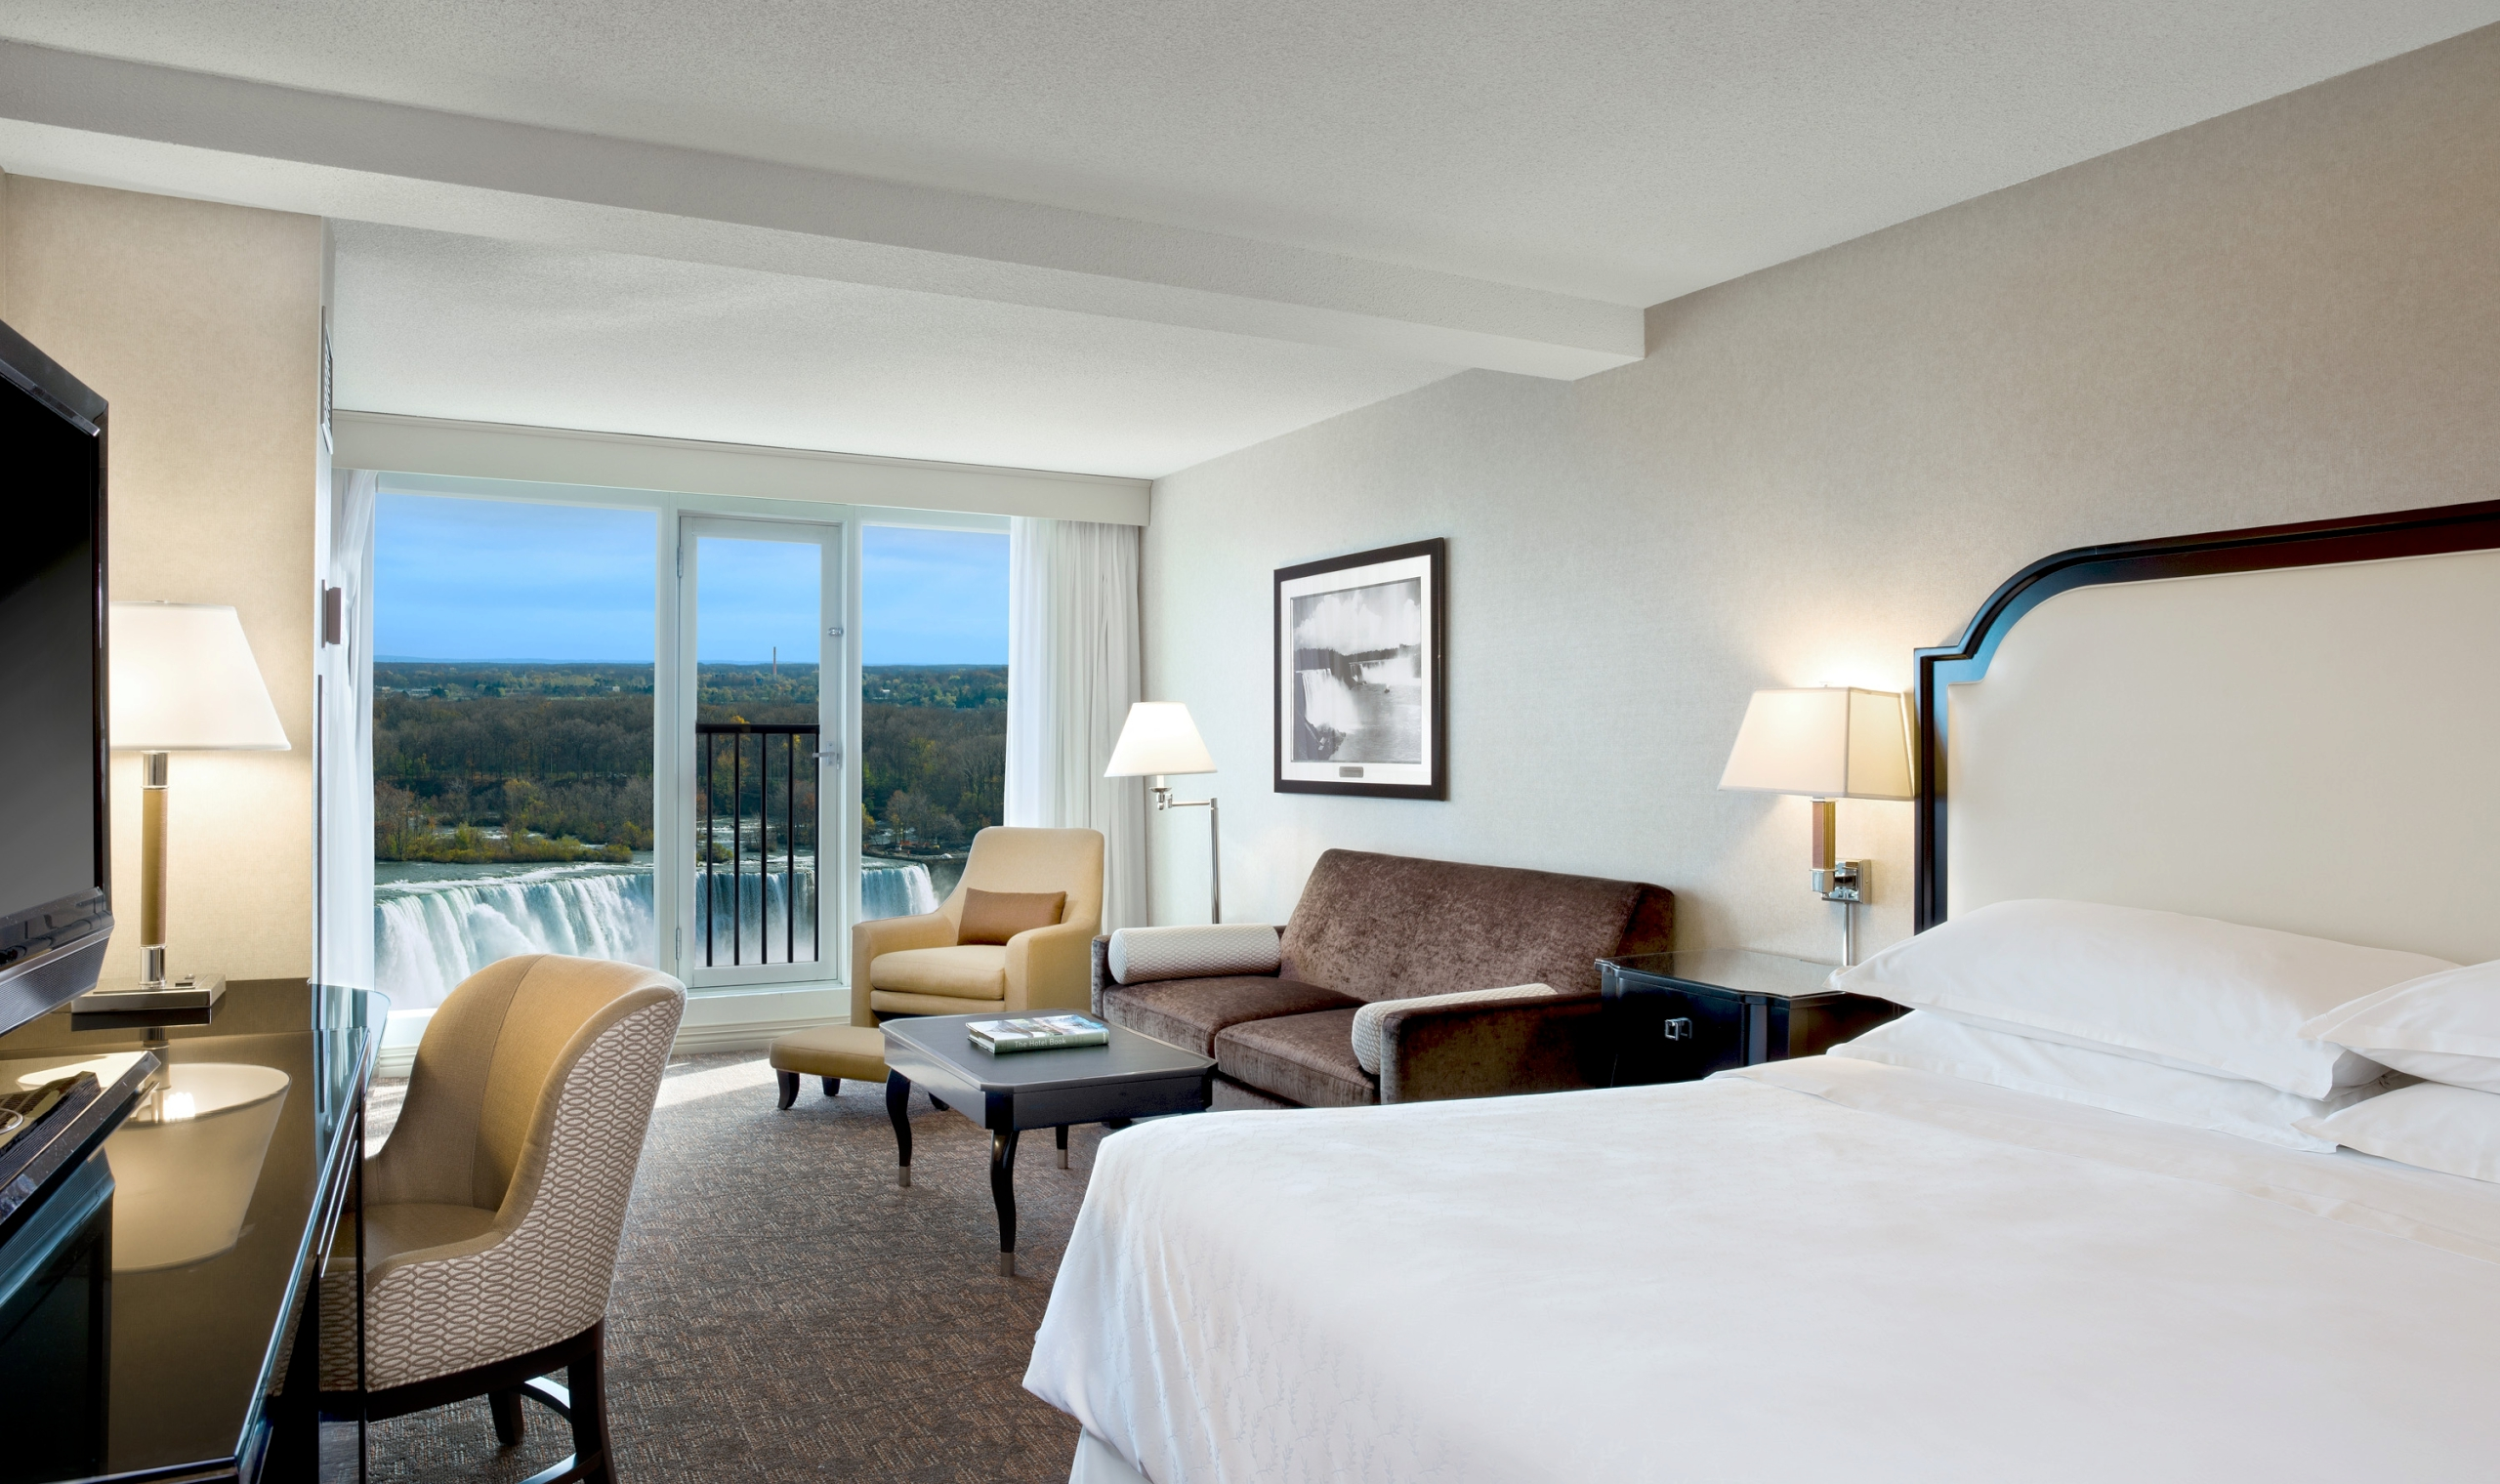 Best Hotels In Toronto With Jacuzzi In Room